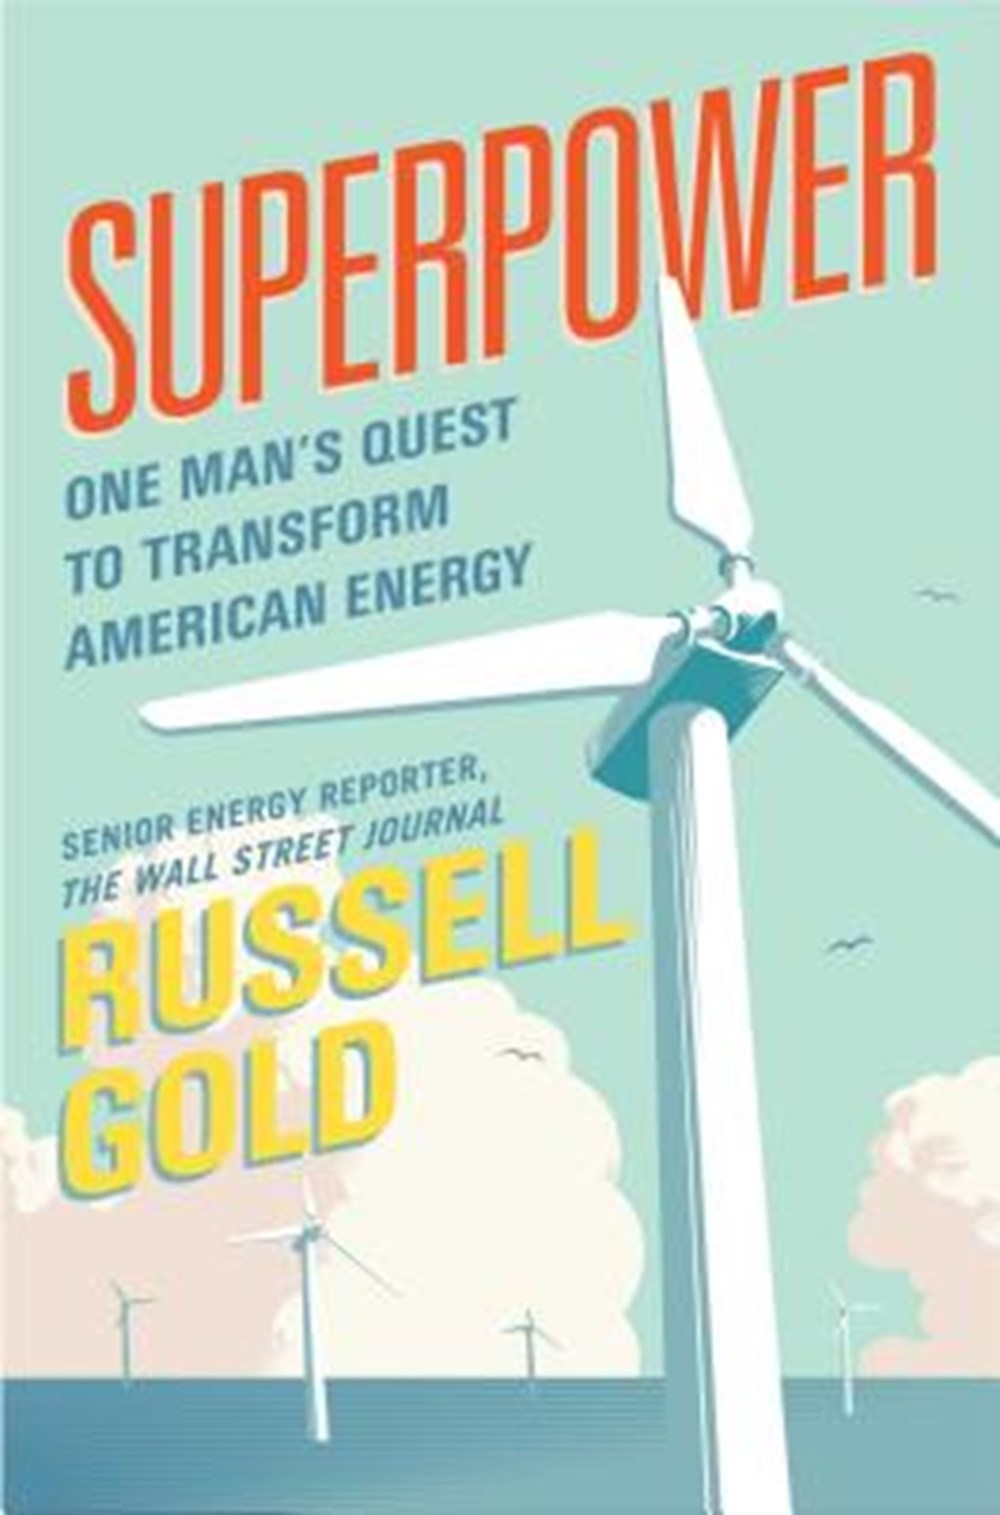 Superpower One Man's Quest to Transform American Energy